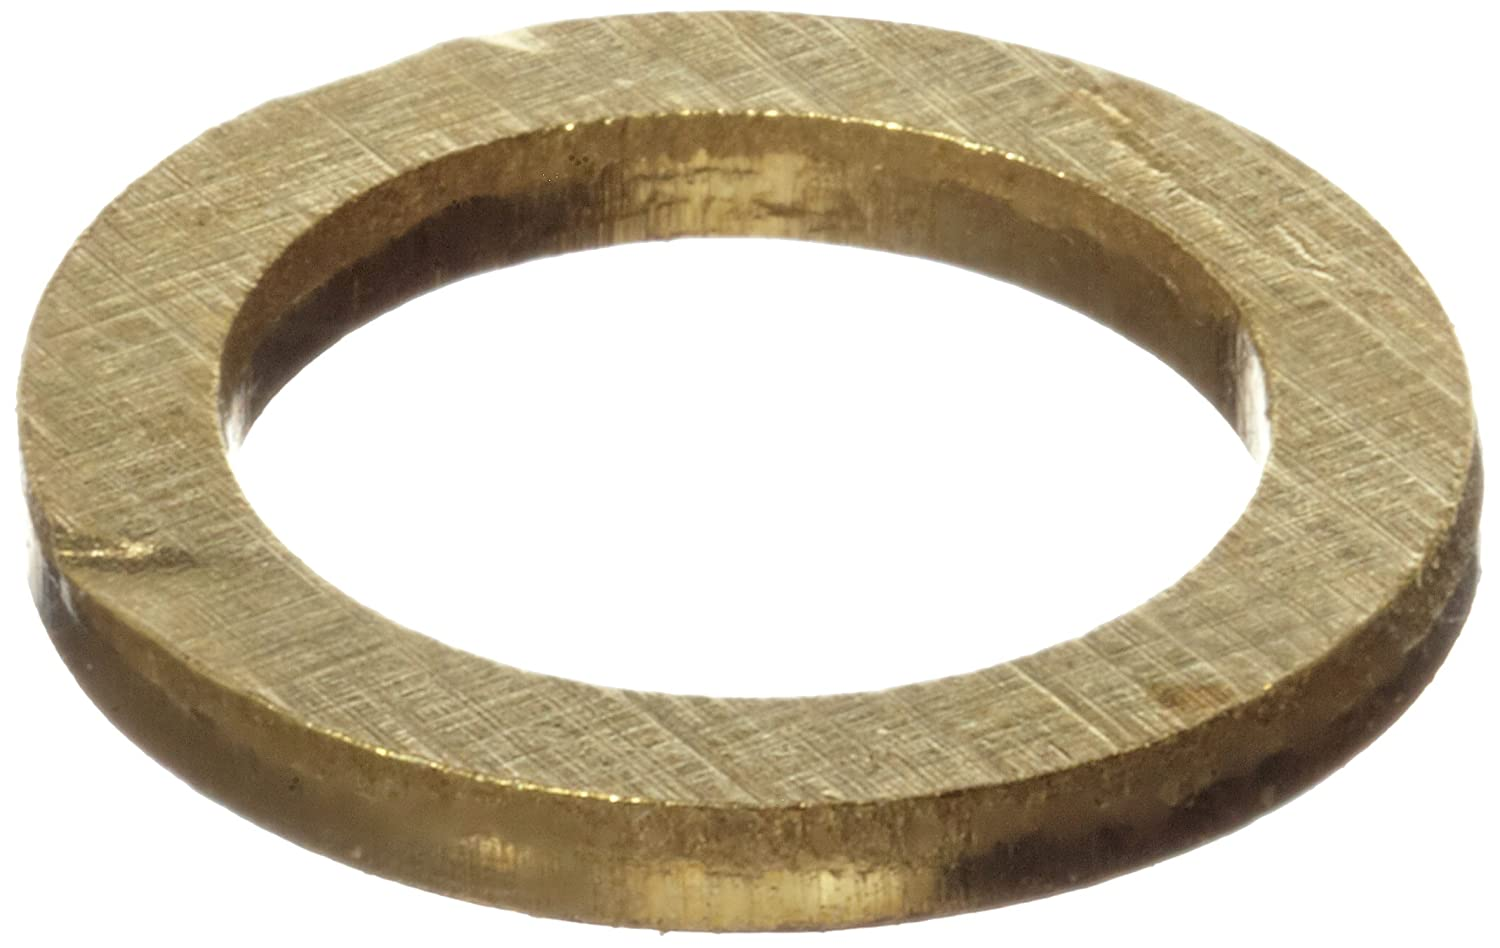 H02//H04 Temper 0.250 ID 0.375 OD 260 Brass Round Shim Finish Unpolished 0.003 Thickness ASTM B36 Pack of 10 Mill